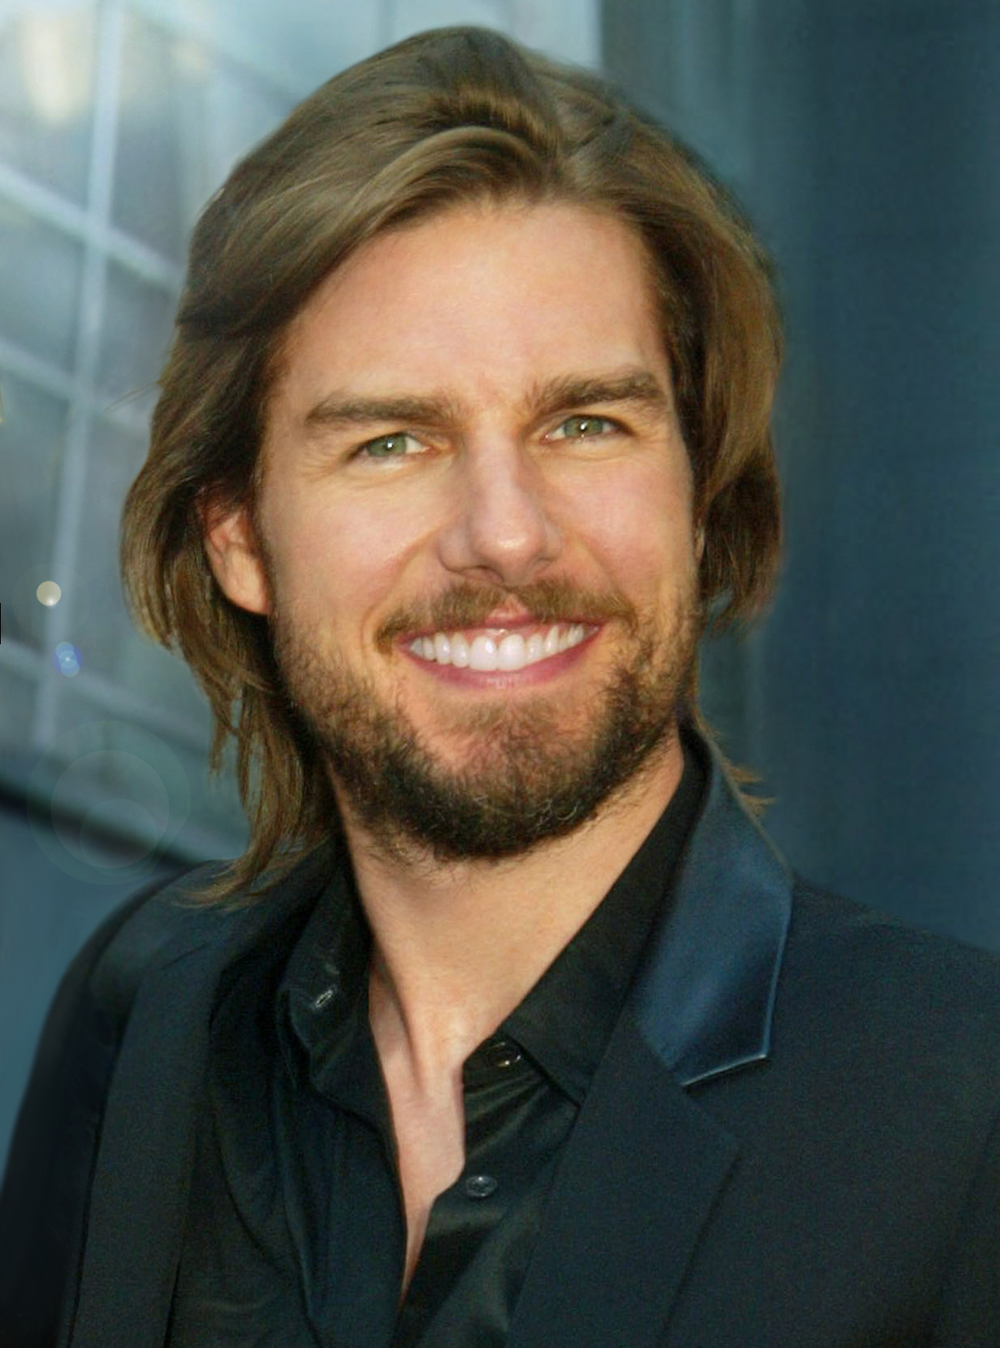 Tom Cruise Celebrity Edits at Thomas Canny Studio.com.jpg